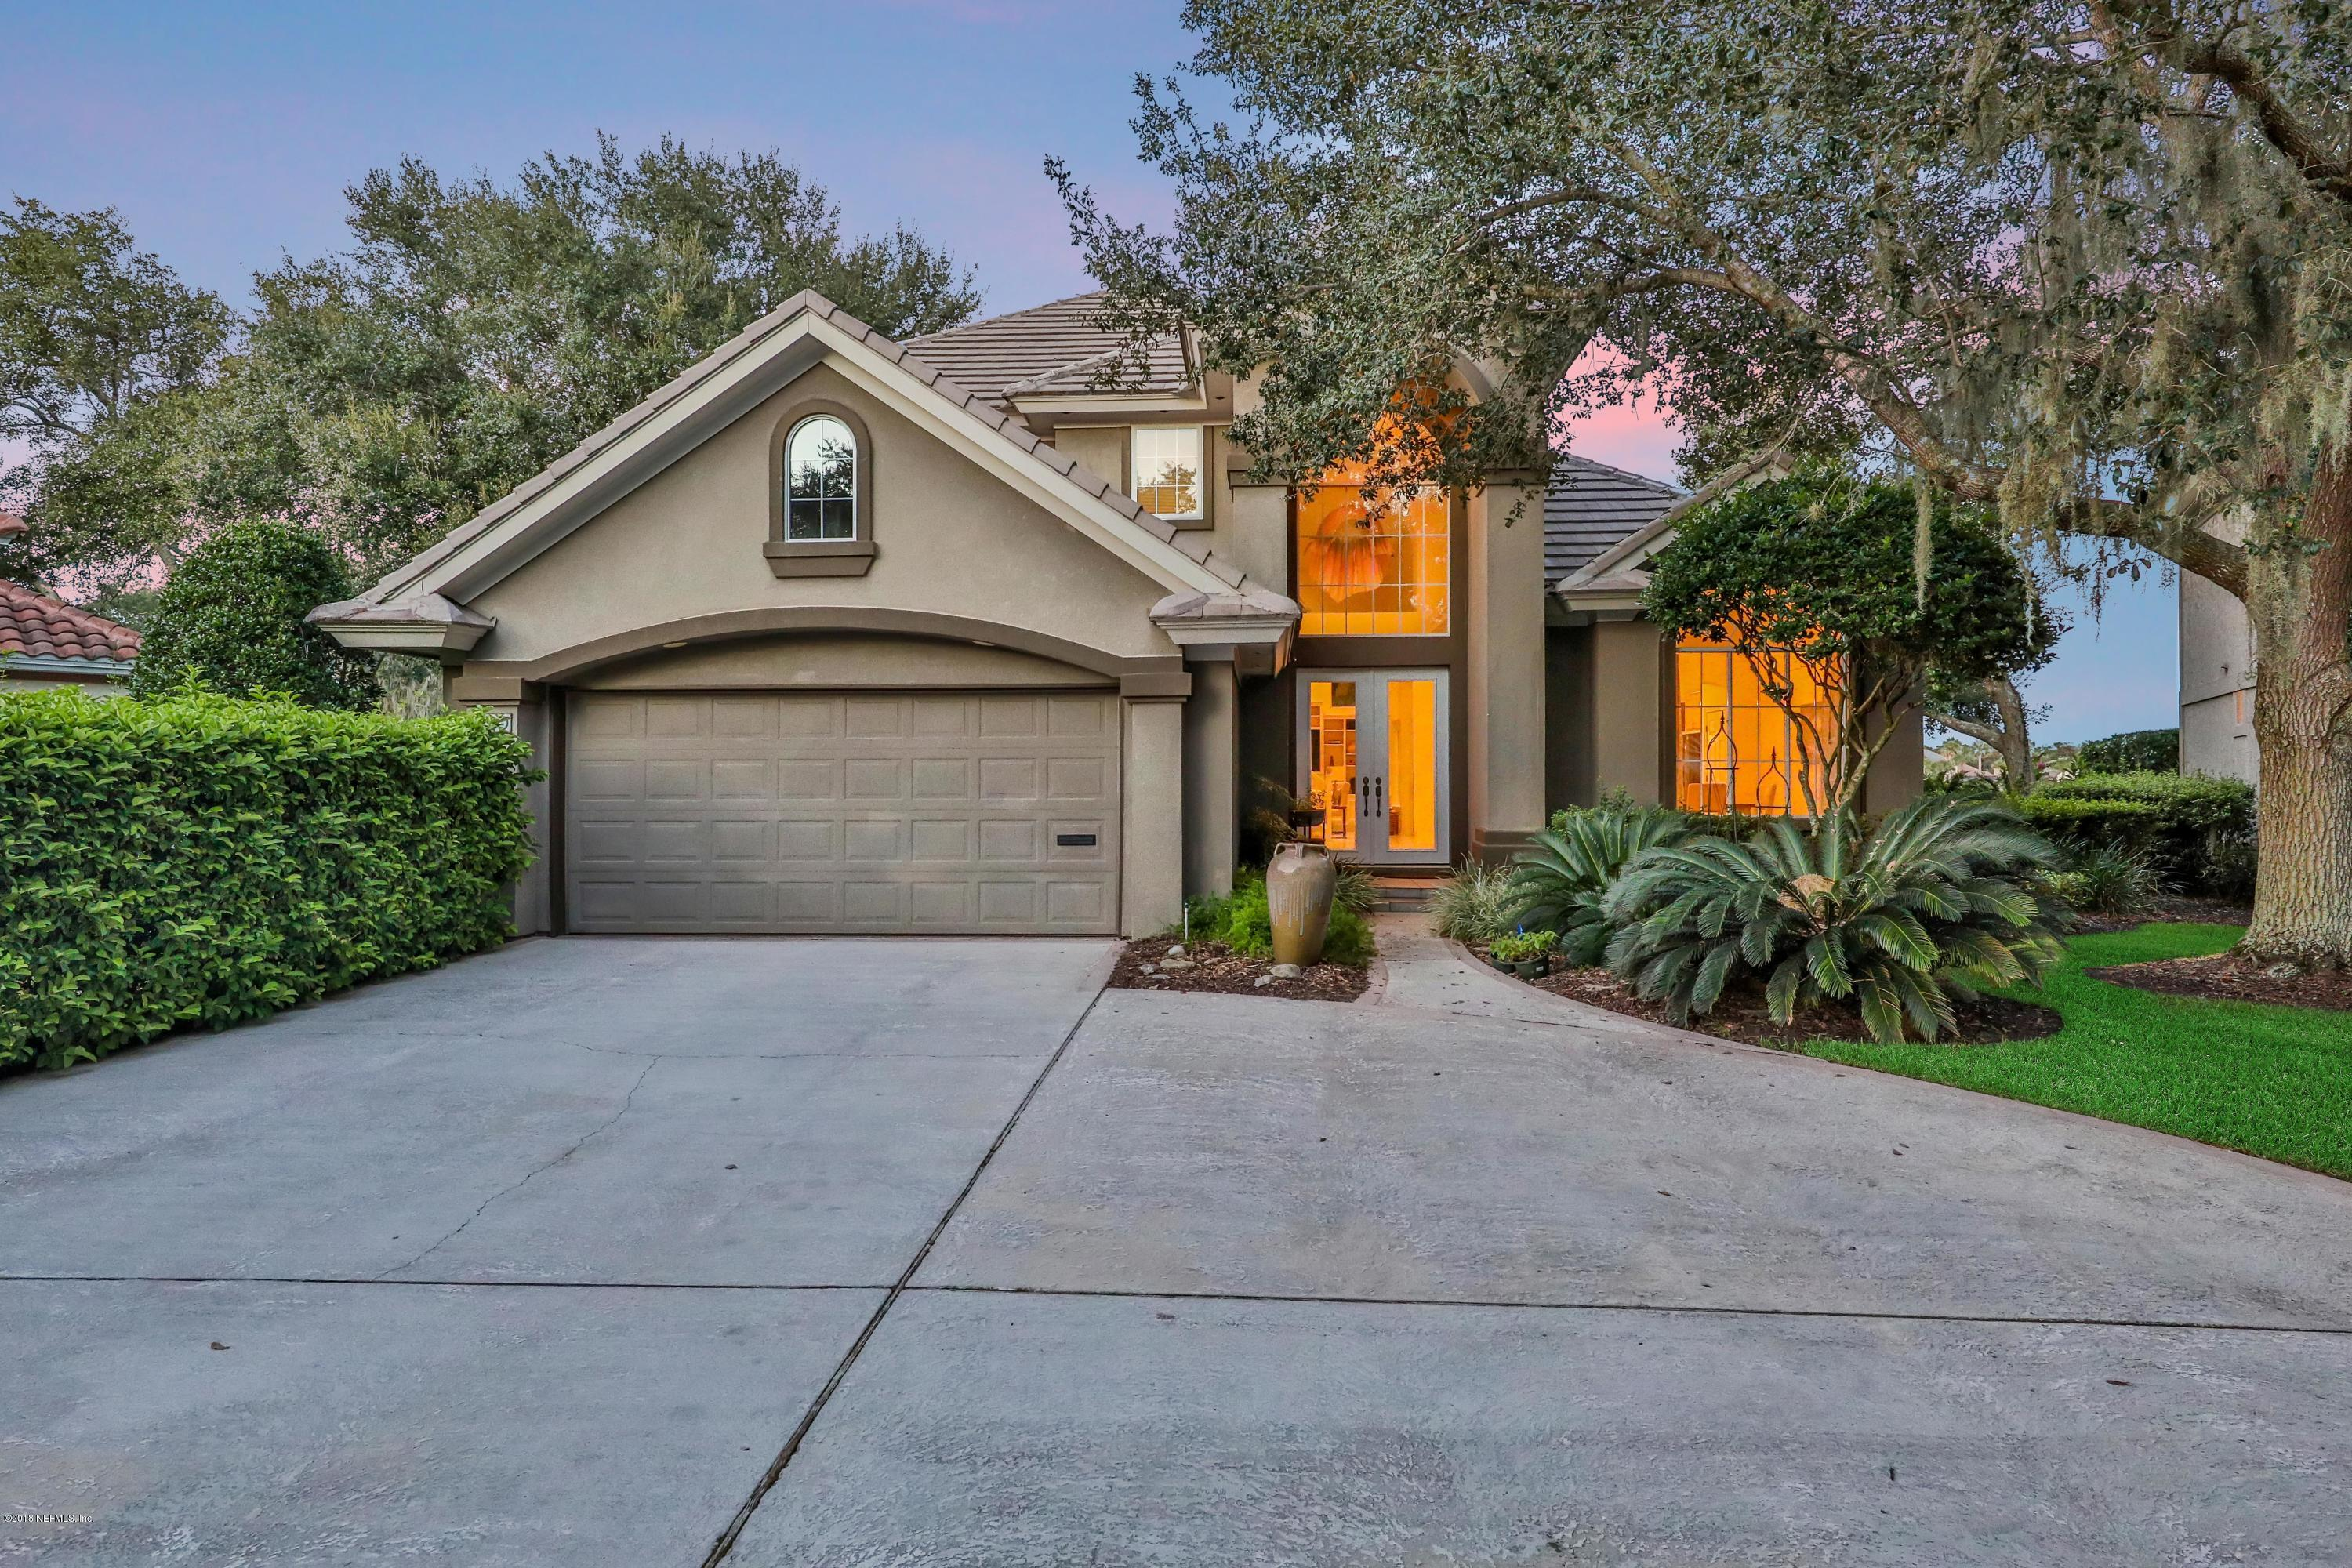 220 CANNON, PONTE VEDRA BEACH, FLORIDA 32082, 3 Bedrooms Bedrooms, ,2 BathroomsBathrooms,Residential - single family,For sale,CANNON,957396